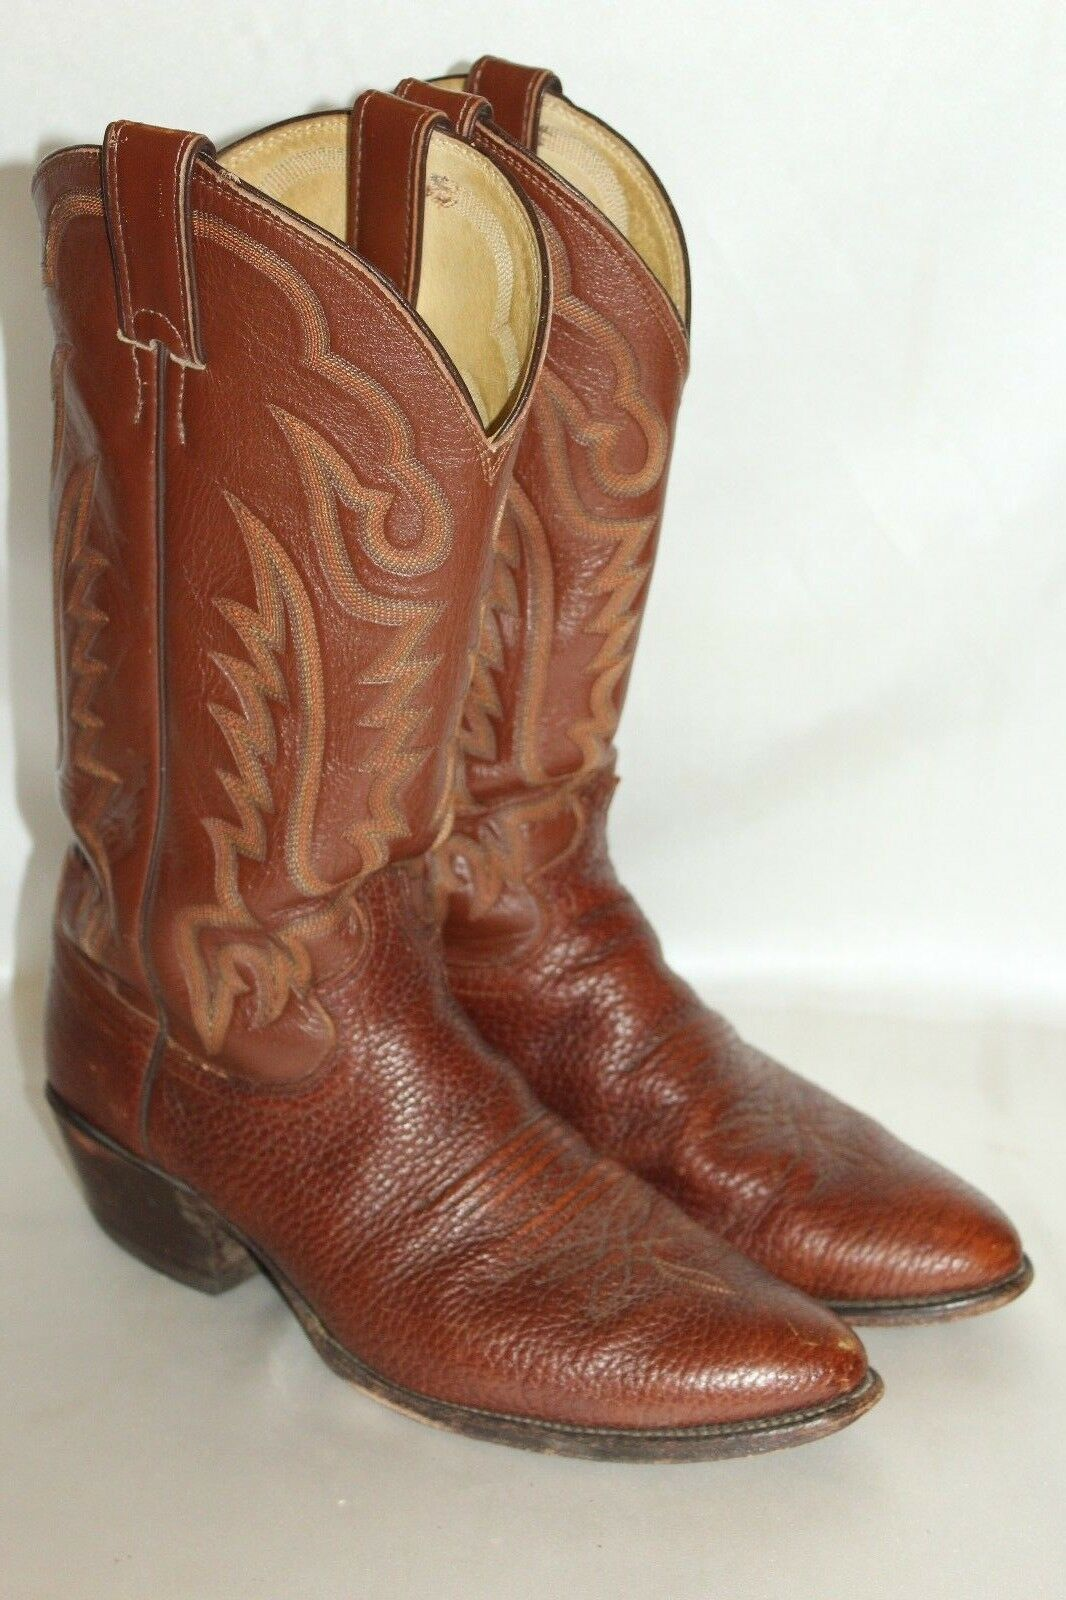 Mens JUSTIN BOOTS Brown Calf Leather Western Cowboy Low Heel Riding Boots 7.5 D